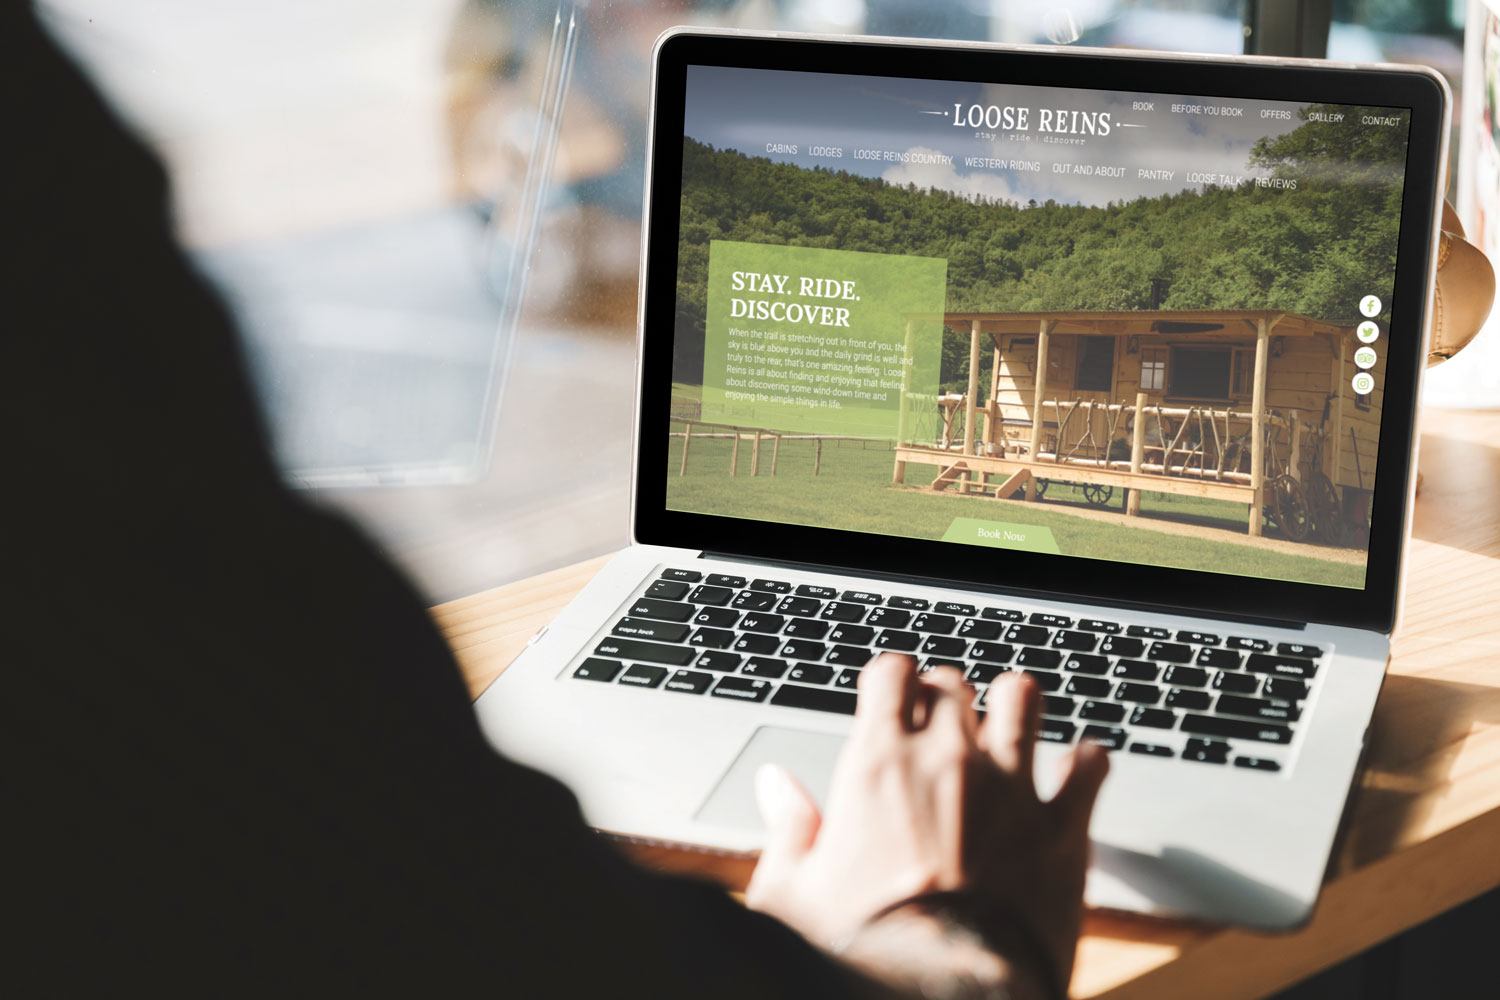 Loose Reins Drupal Glamping Website